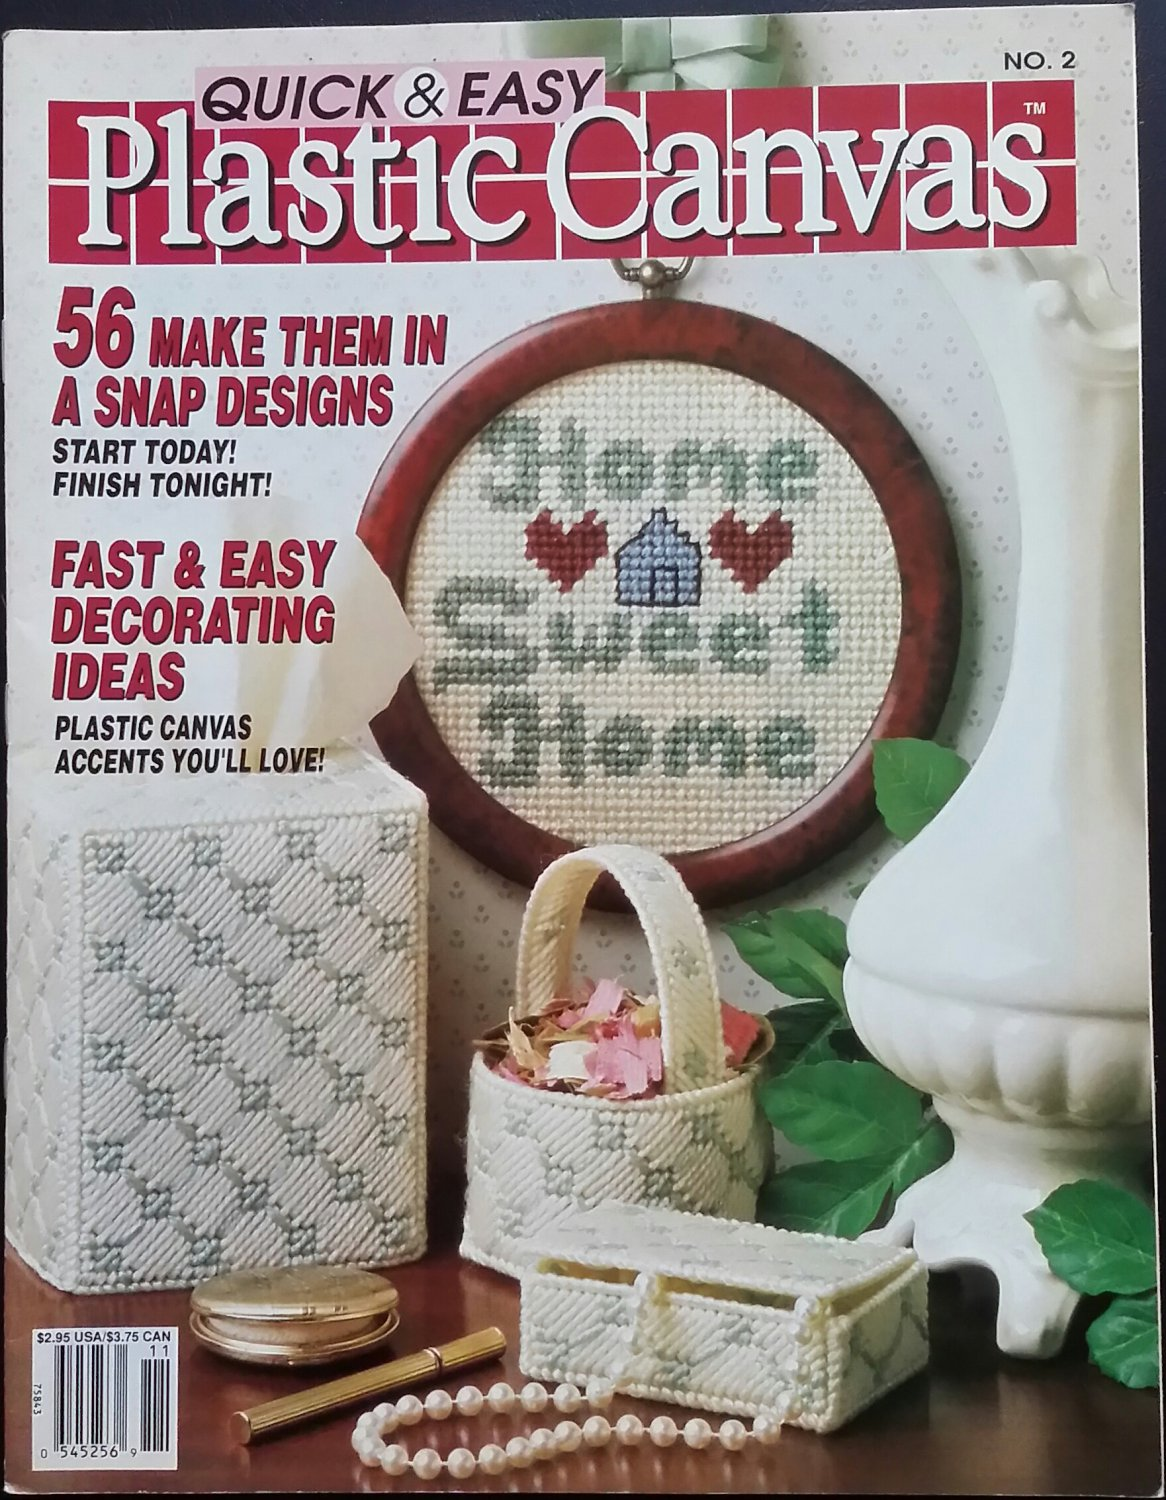 Quick & Easy Plastic Canvas No. 02 Magazine (Oct / Nov 1989)